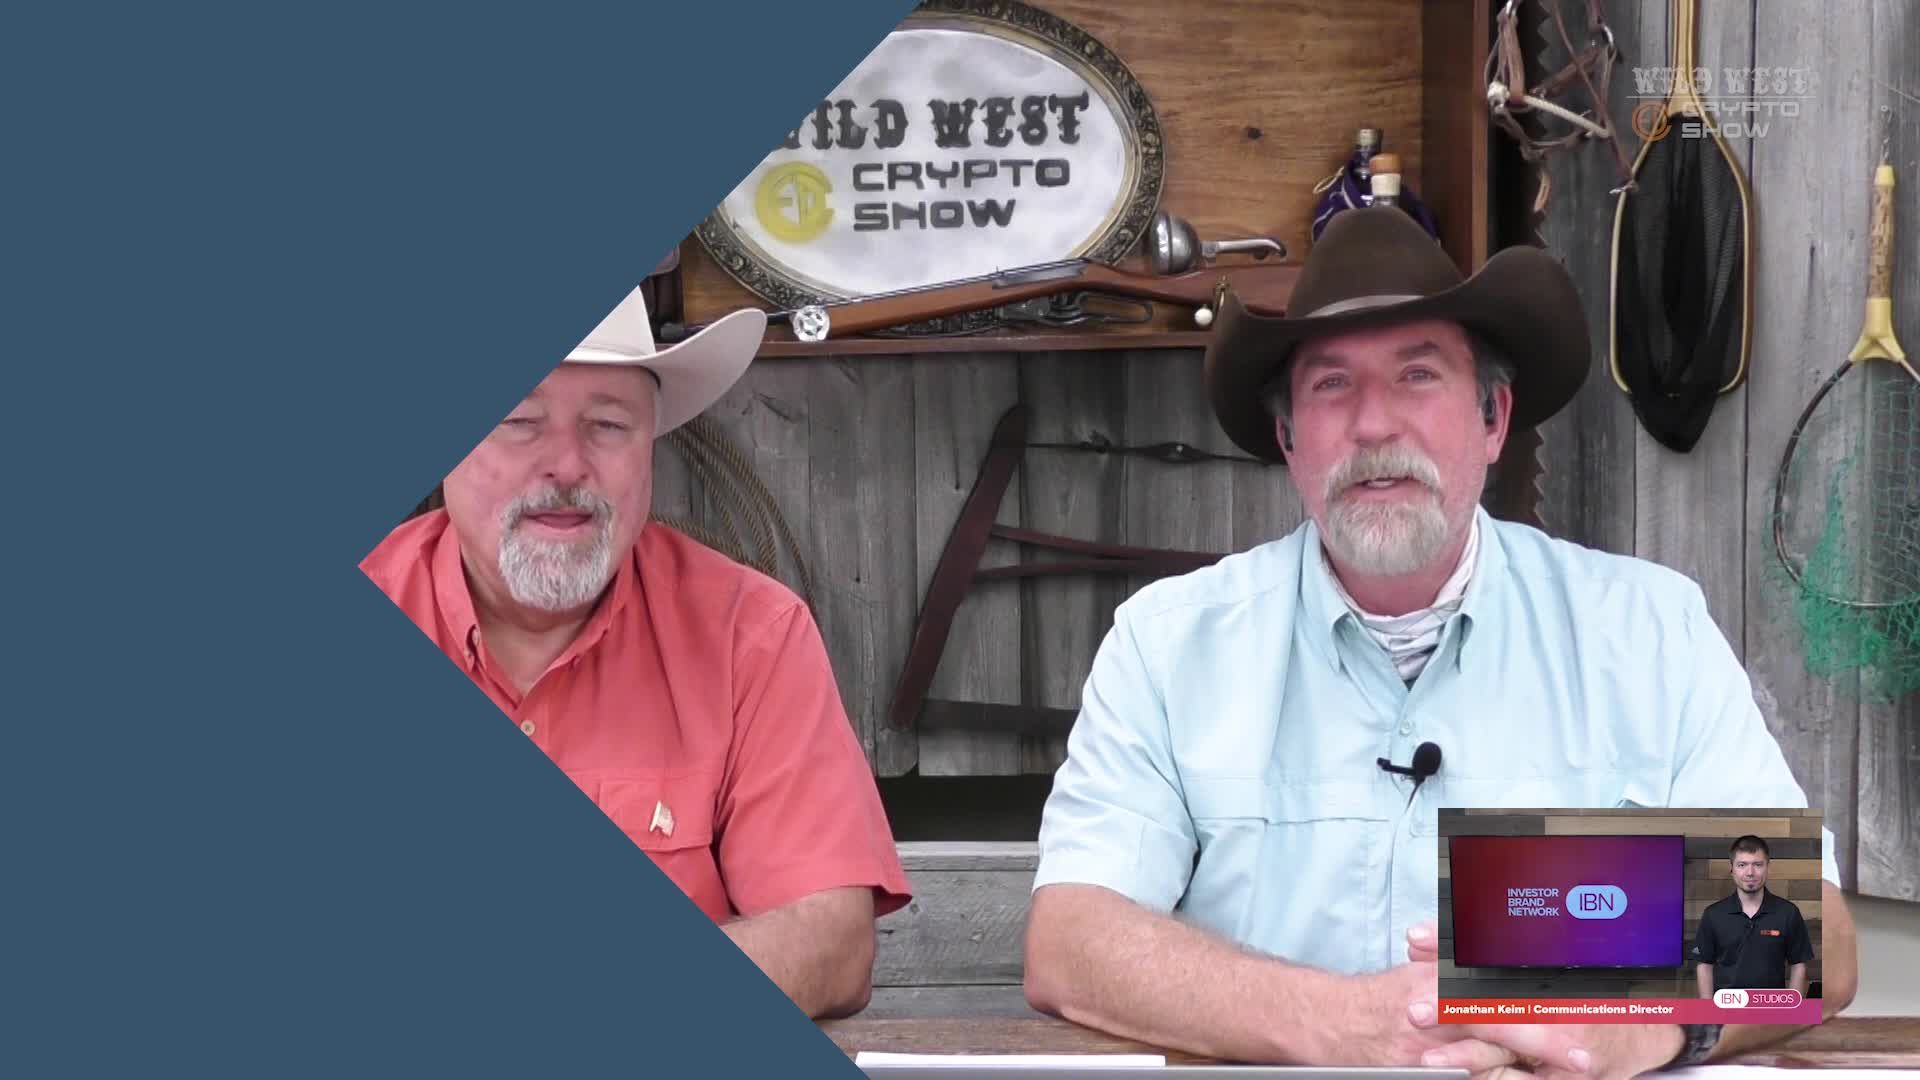 CryptoCurrencyWire Videos-The Wild West Crypto Show Celebrates Continuing Trend Towards Bitcoin Adoption | CryptoCurrencyWire on The Wild West Crypto Show | Episode 131